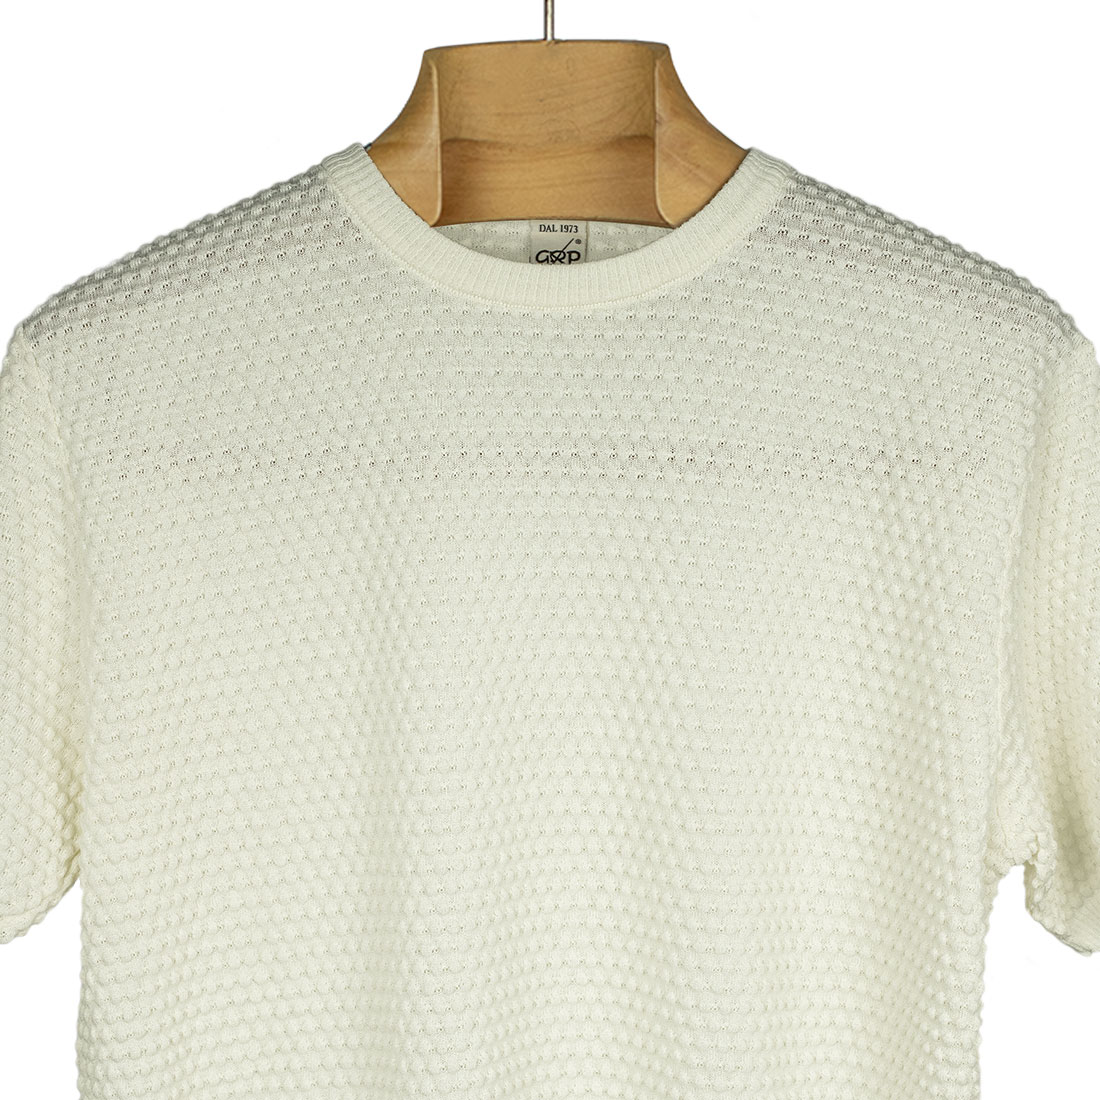 GRP Italy Spring Summer 2021 SS21 bubble stitch knit cotton tee (14).jpg